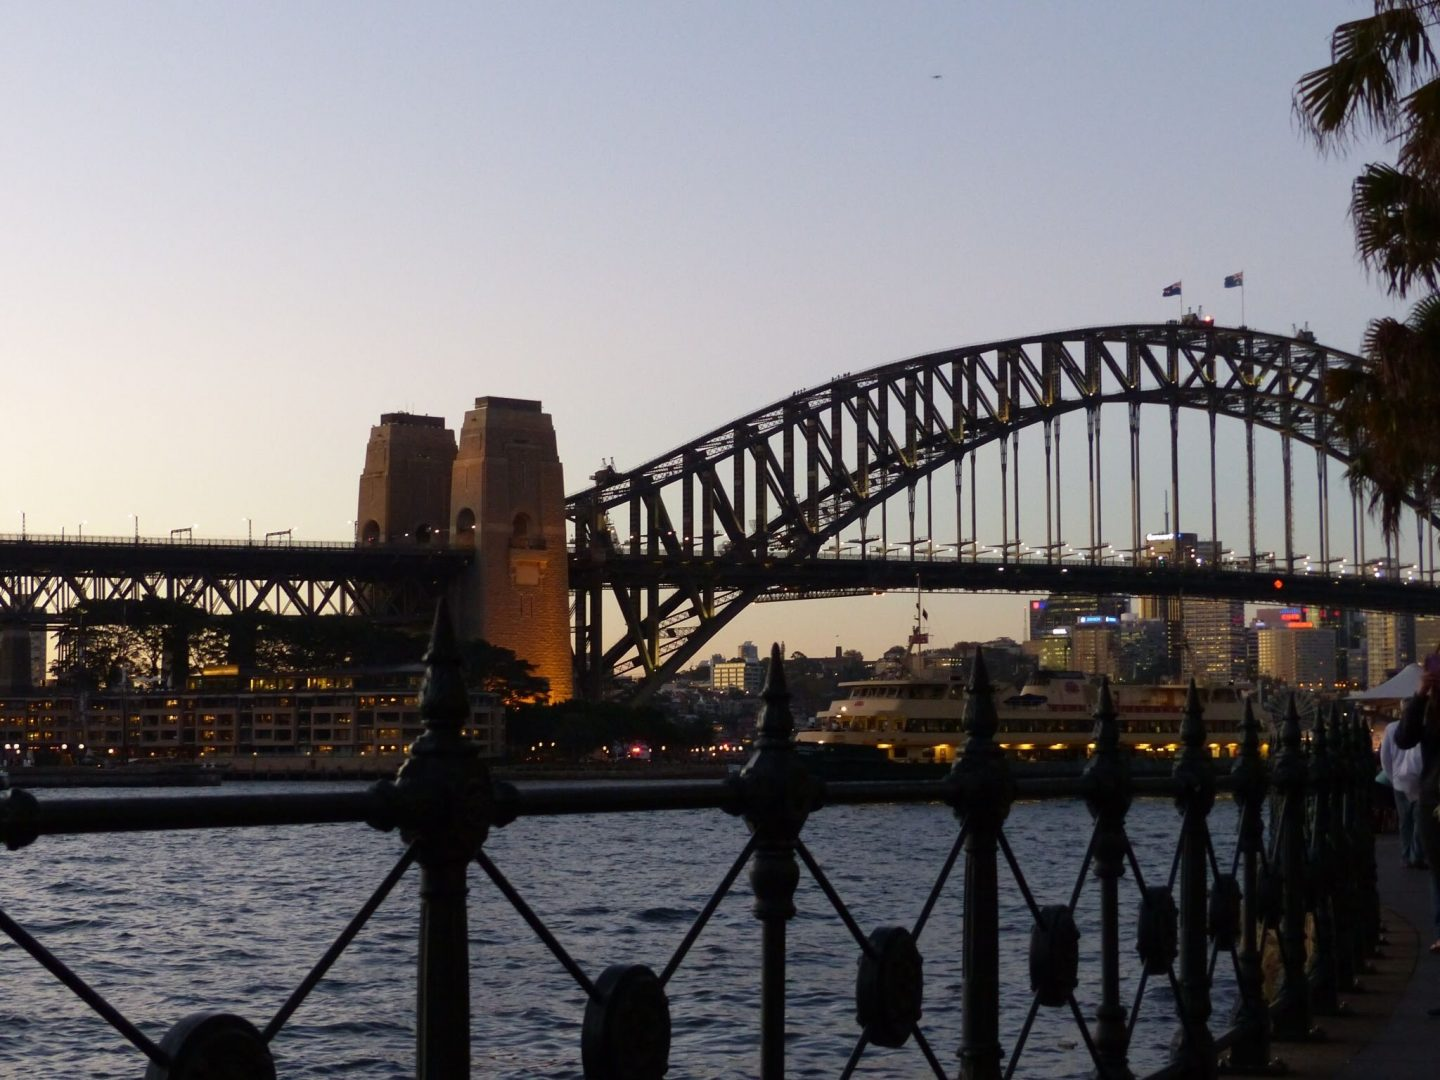 Harbour Bridge in the evening